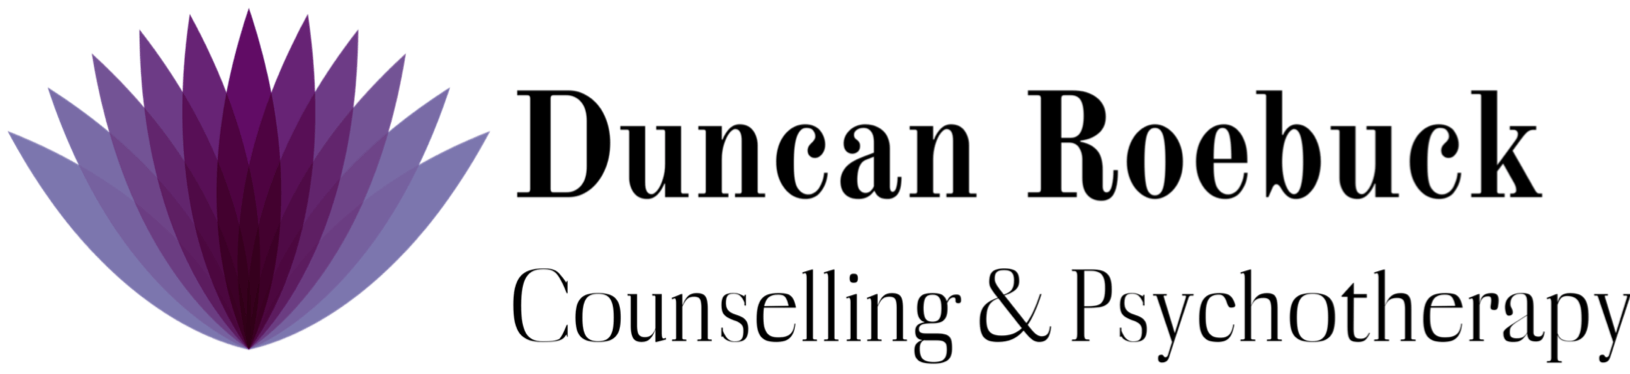 Duncan Roebuck Counselling & Psychotherapy